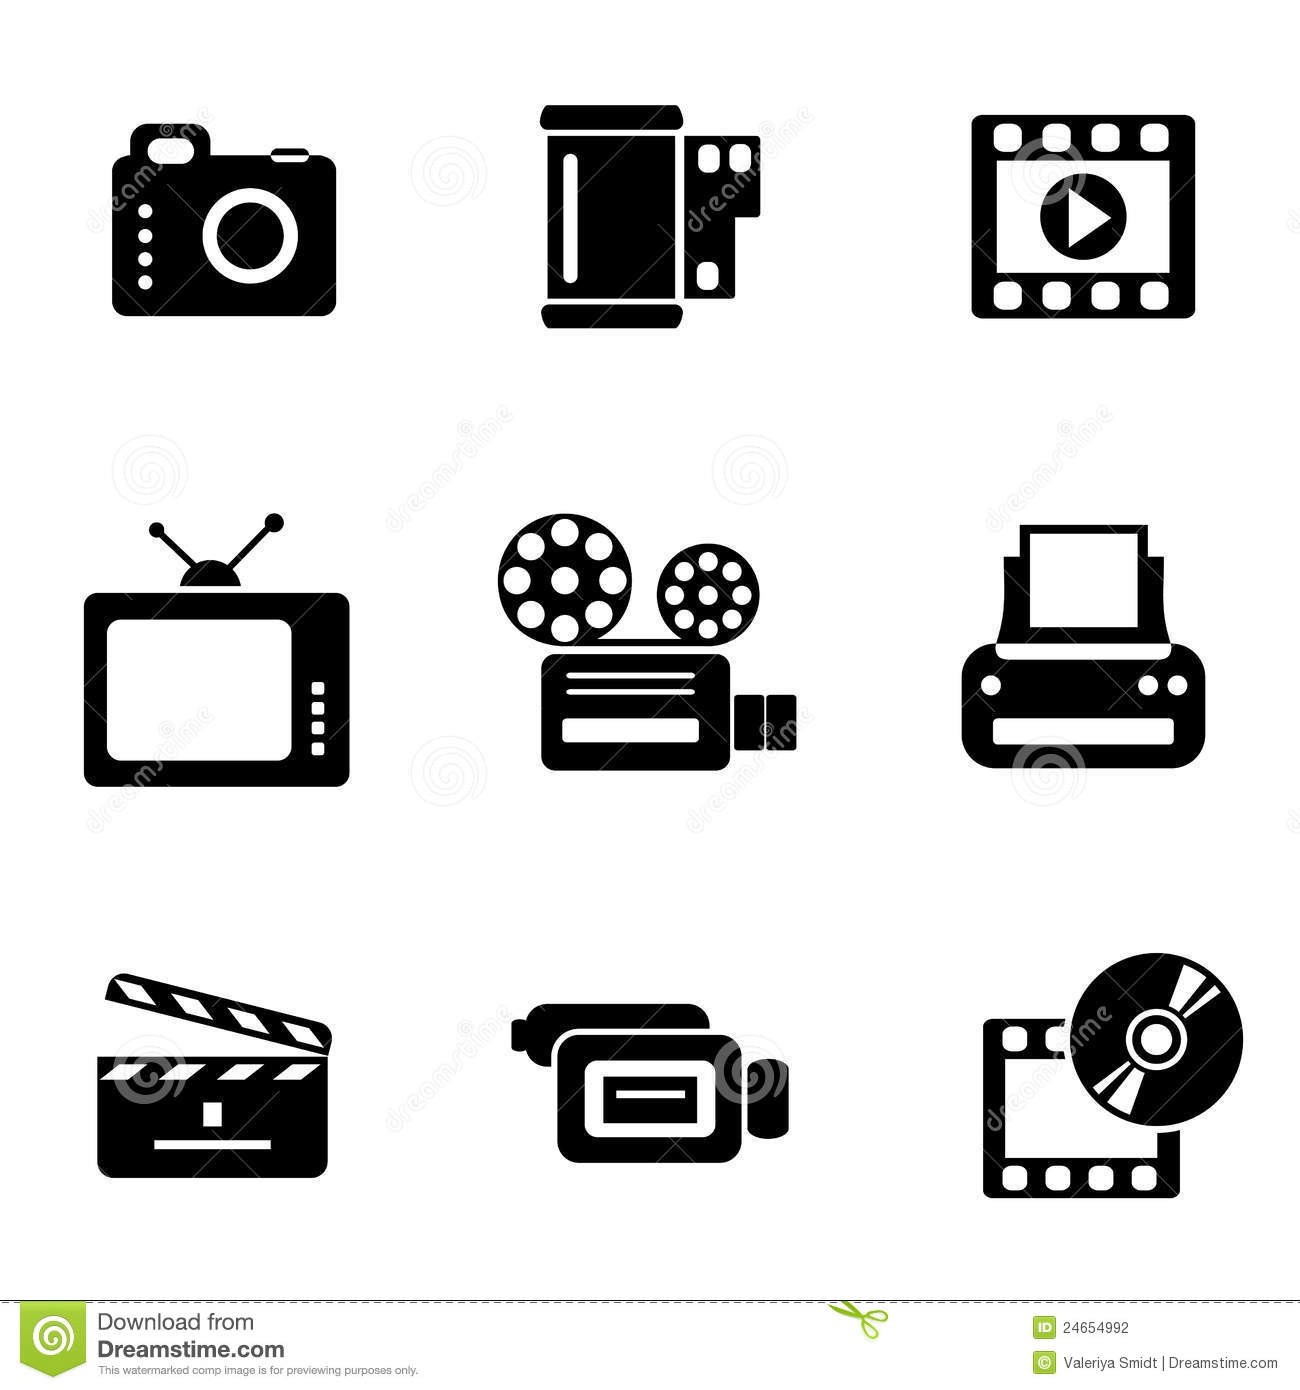 S le plan as well Residential Design moreover Royalty Free Stock Images Electric Goods Icons Household Appliance Set Image32987709 furthermore Inter  Of Things Design Vector 17788771 additionally Stock Photography  puter Photo Video Icons Image24654992. on electrical design plans